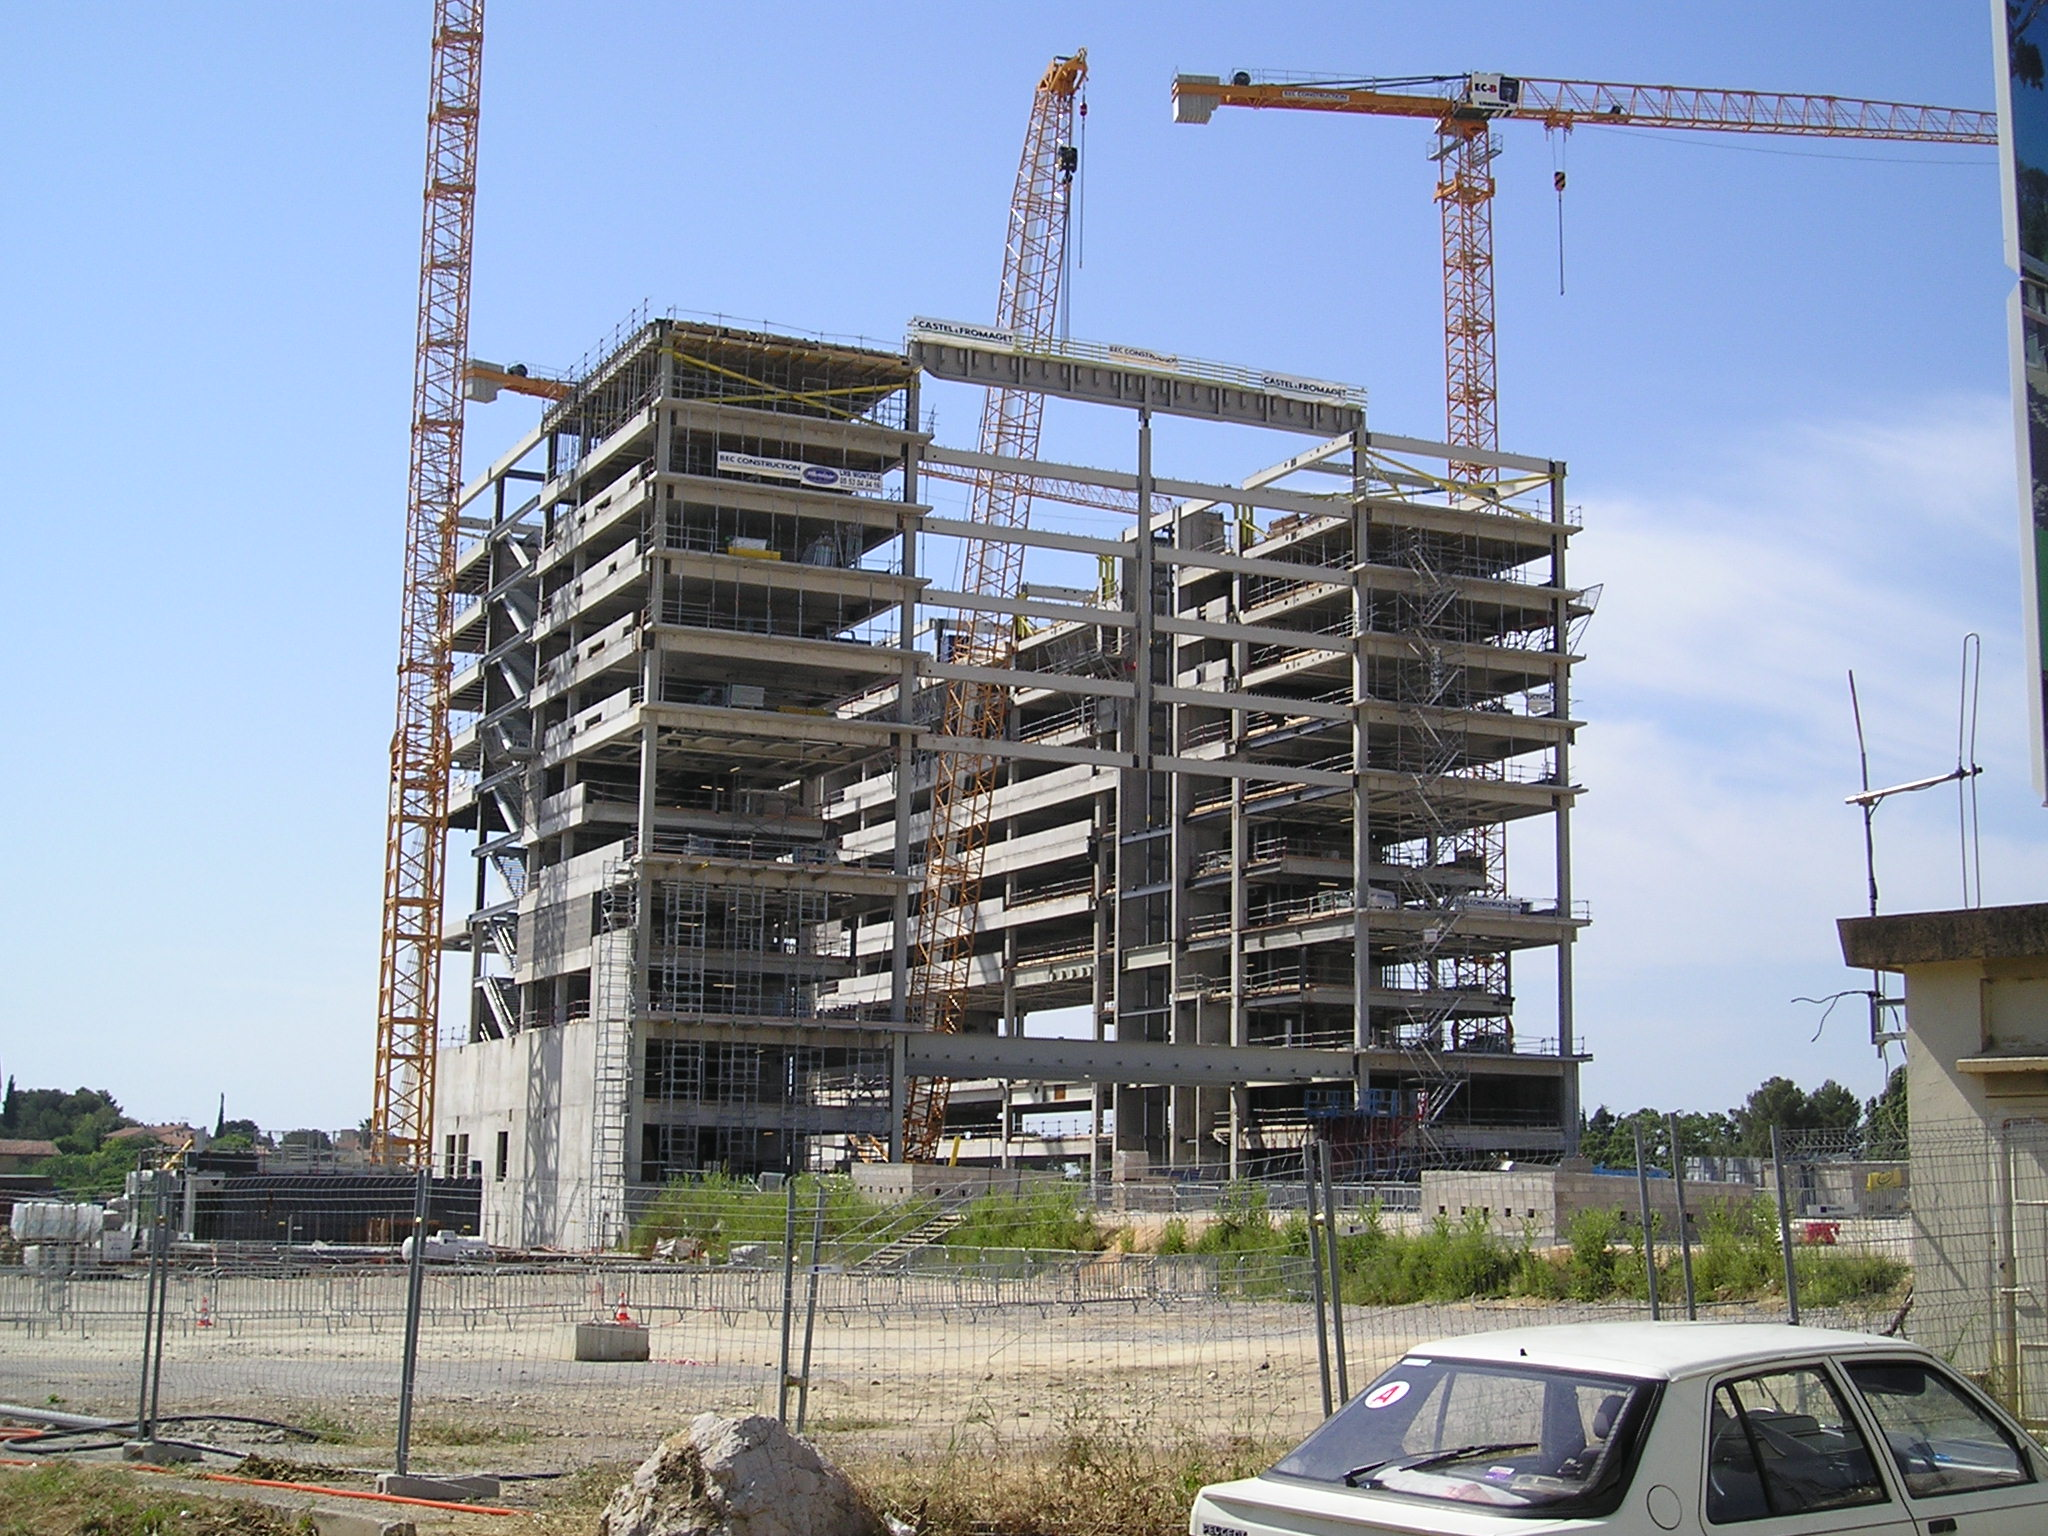 Fichier montpellier hotelville chantier 24052009b jpg for Construction piscine montpellier